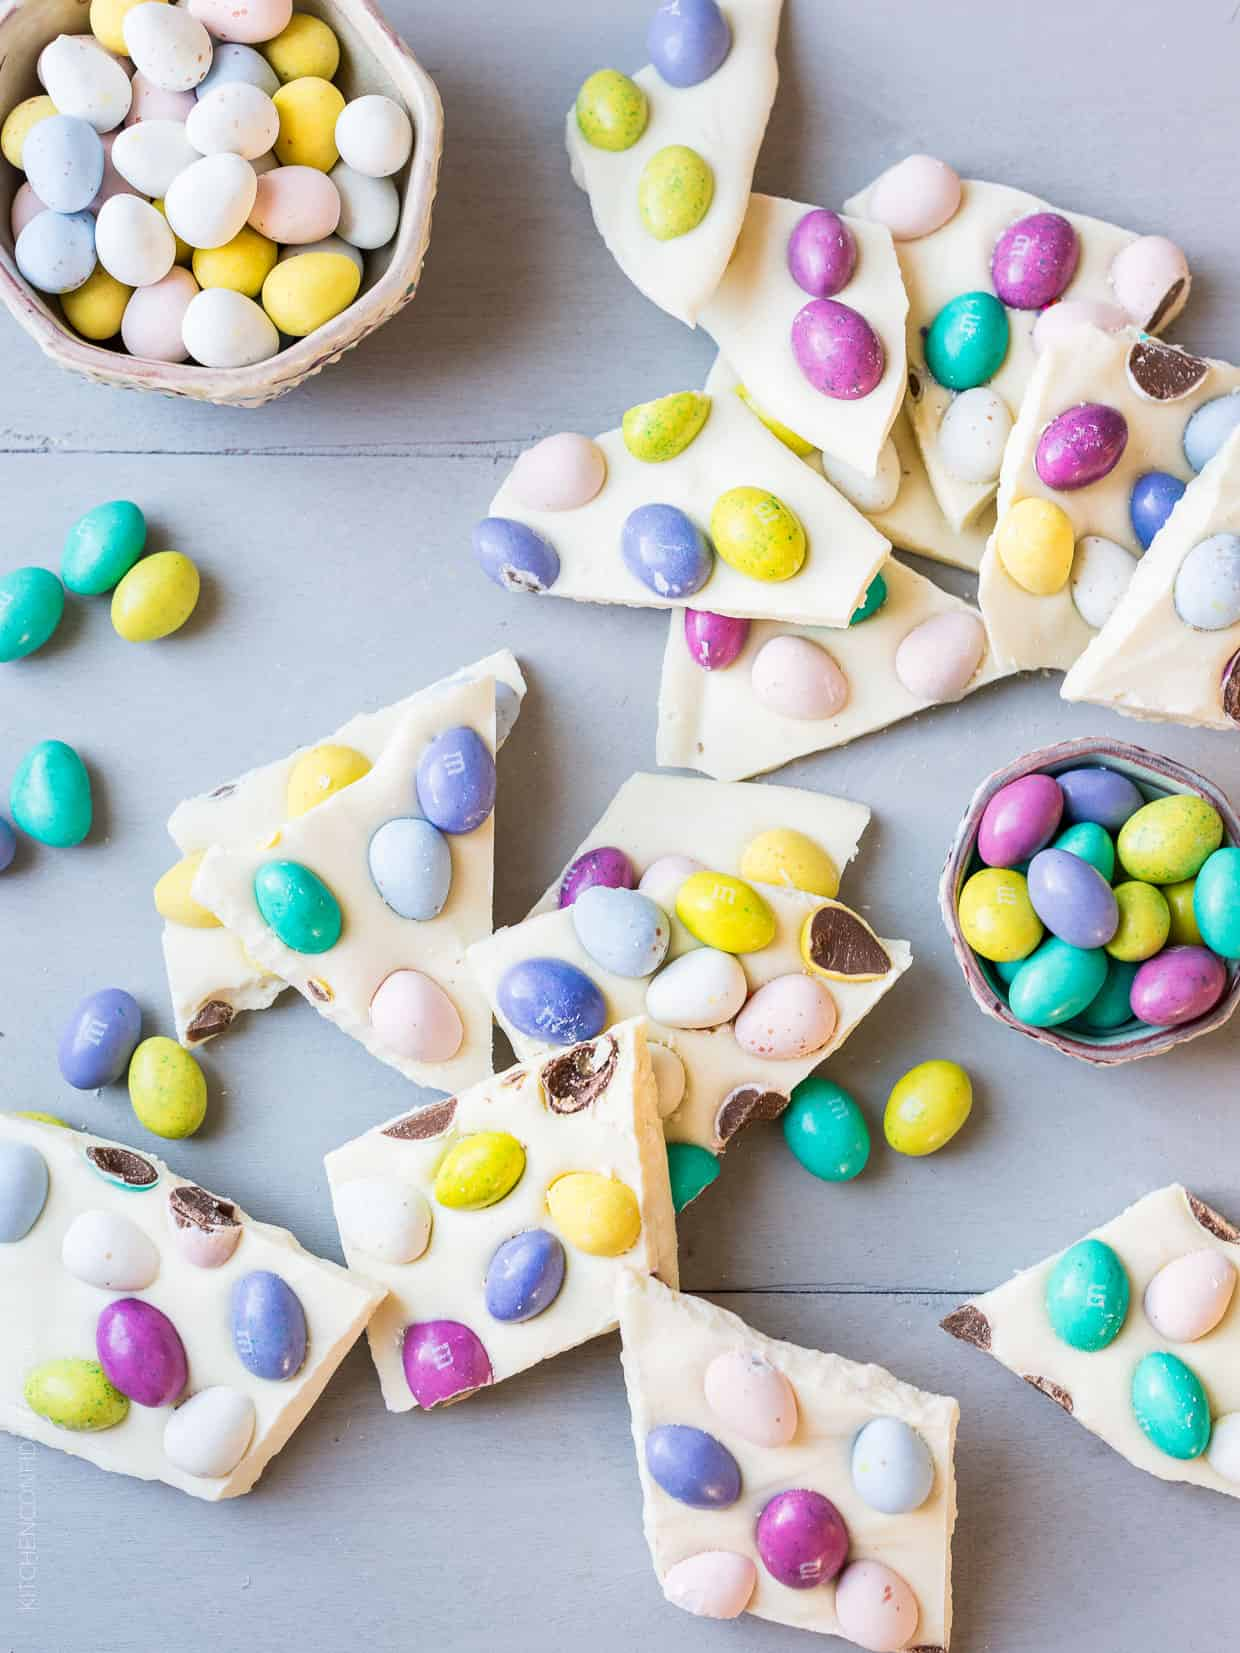 Unleash your inner Easter bunny and make an easy batch of White Chocolate Easter Bark!